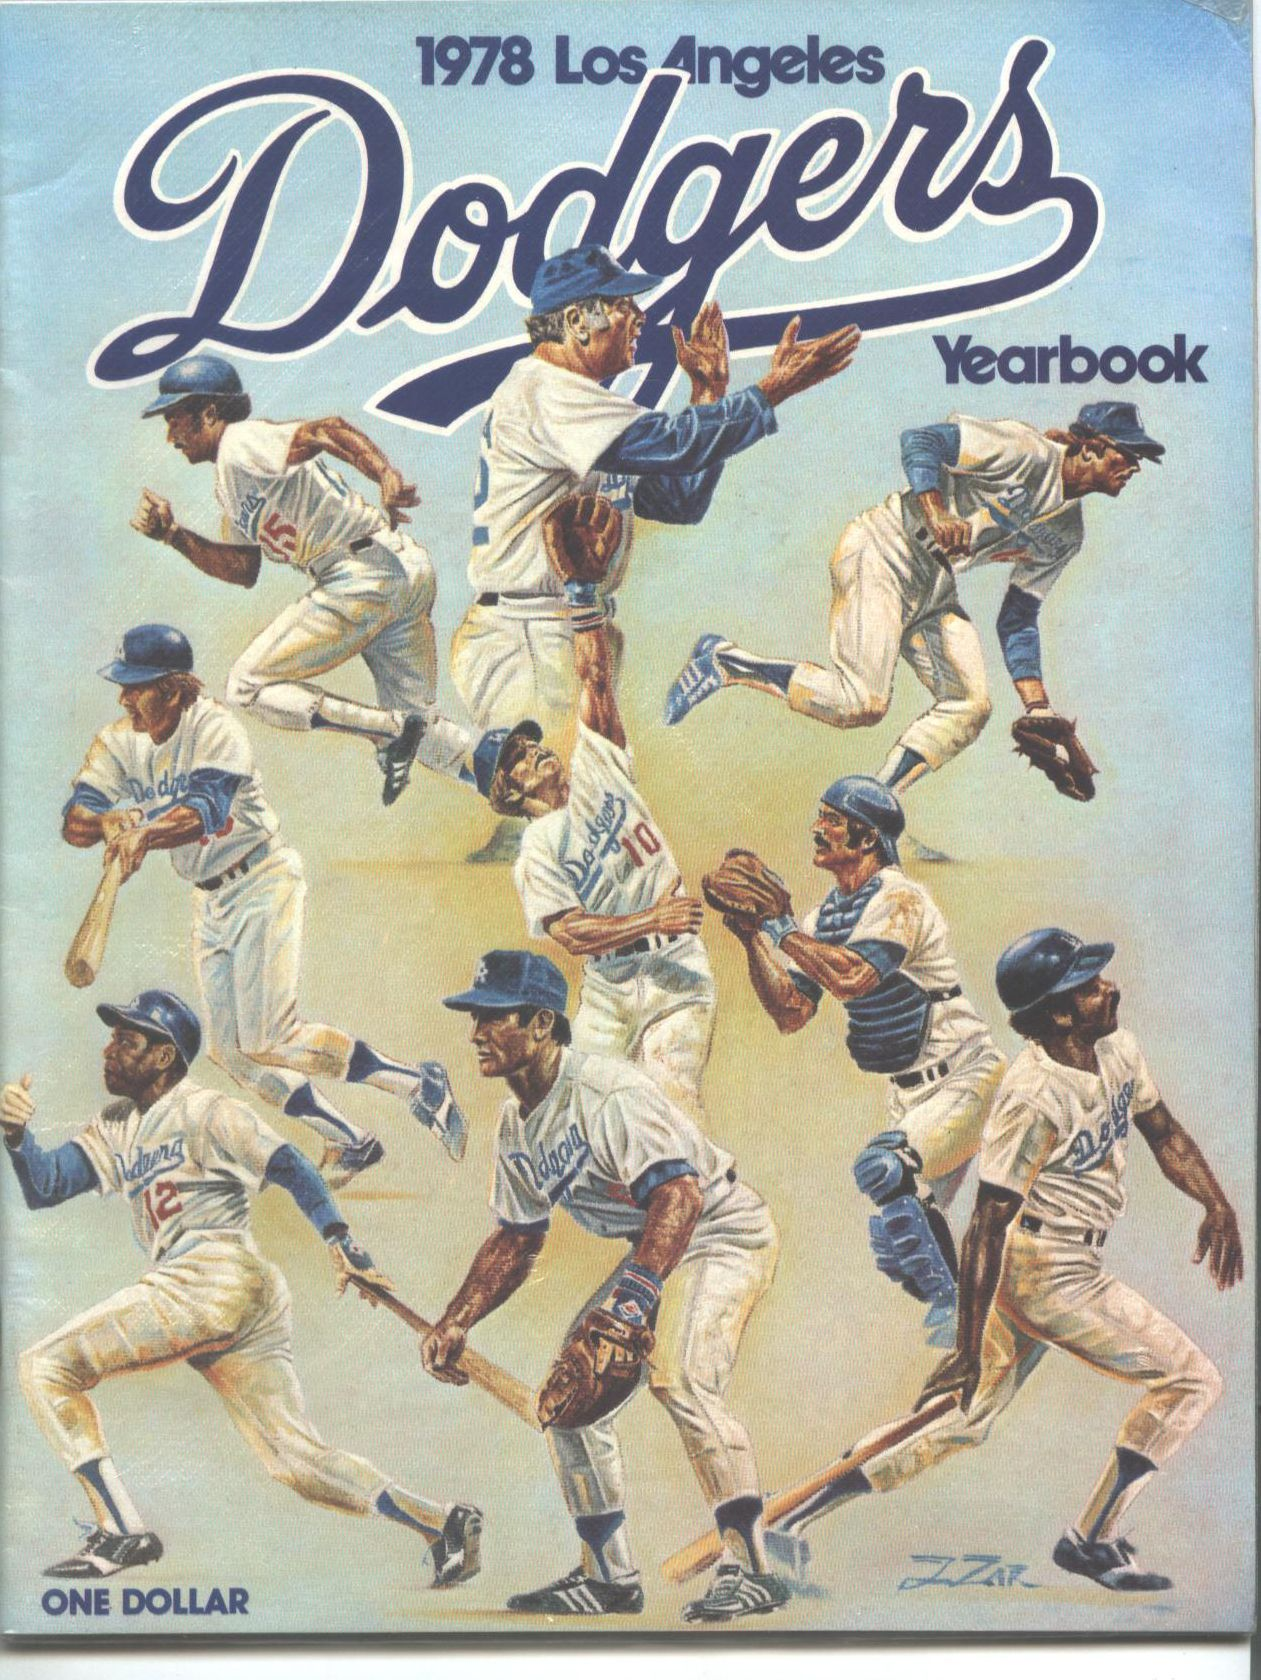 1978 Los Angeles Dodgers Yearbook In Near Mint Condition 8 Plus Shipping Pb Orlampa Com Dodgers Los Angeles Dodgers Dodgers Baseball